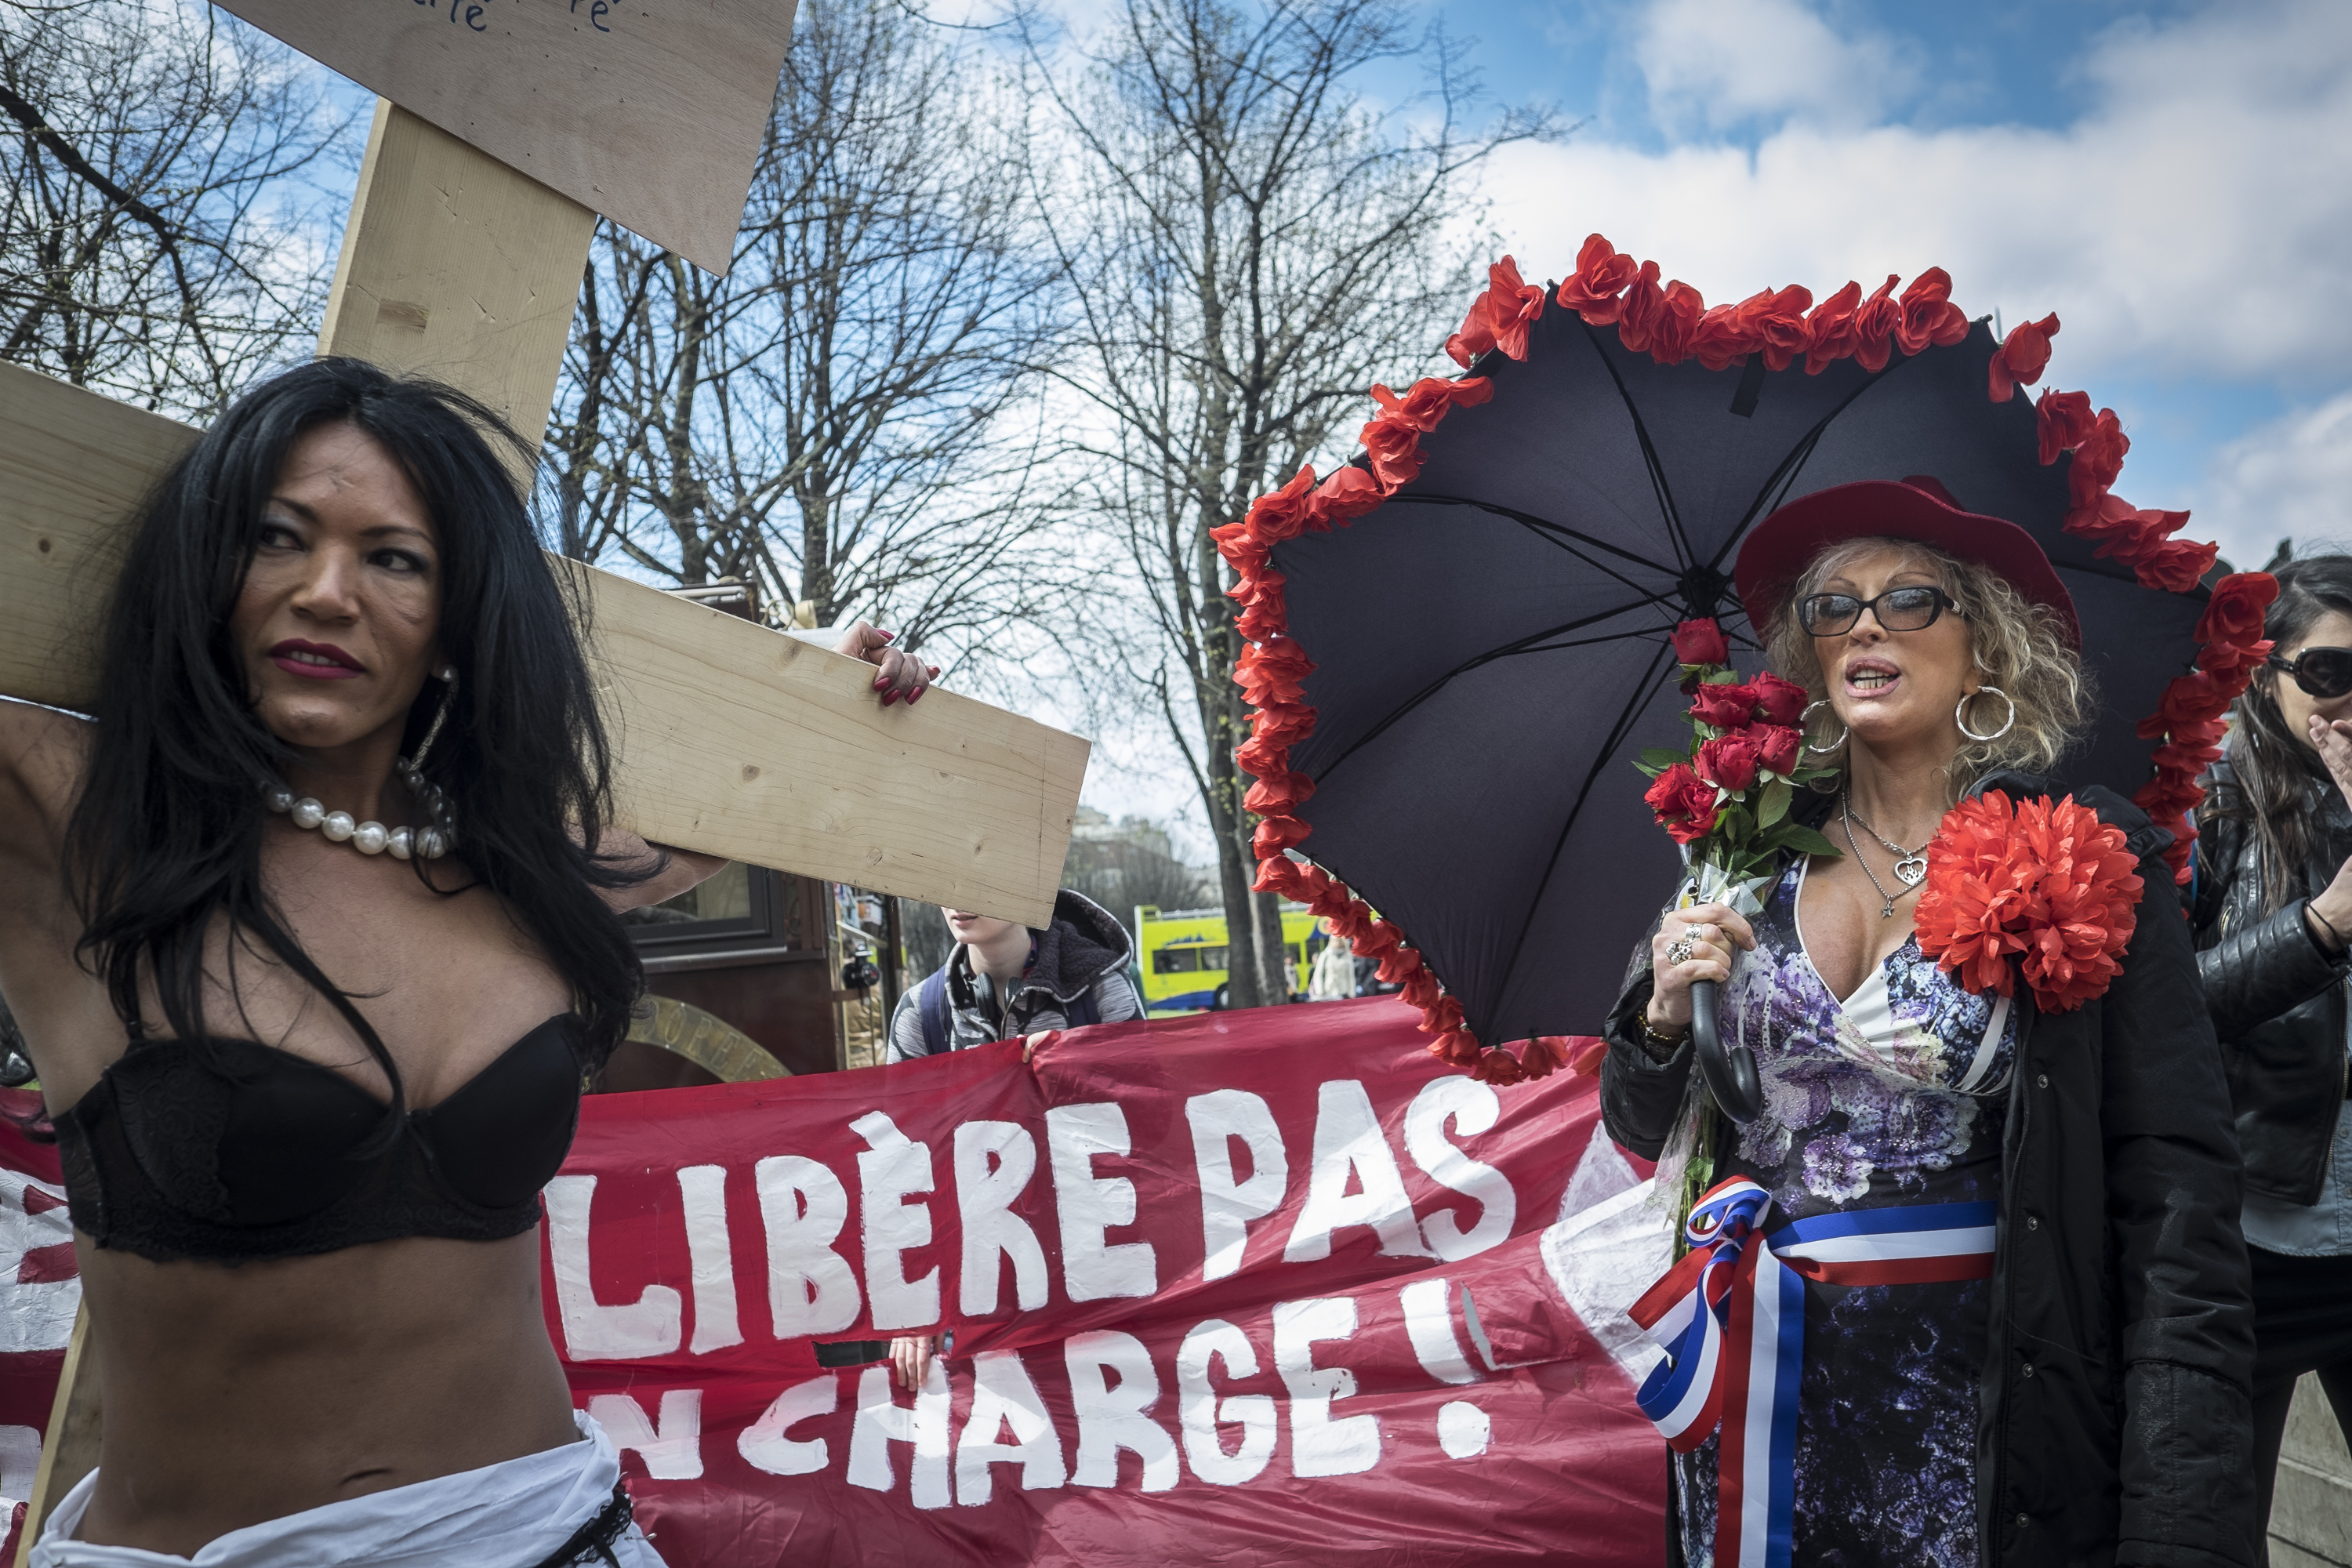 Sex workers and supporters protest near the French National Assembly in Paris on April 6, 2016, as French lawmakers take part in a final debate on a bill that would make it illegal to pay for sex